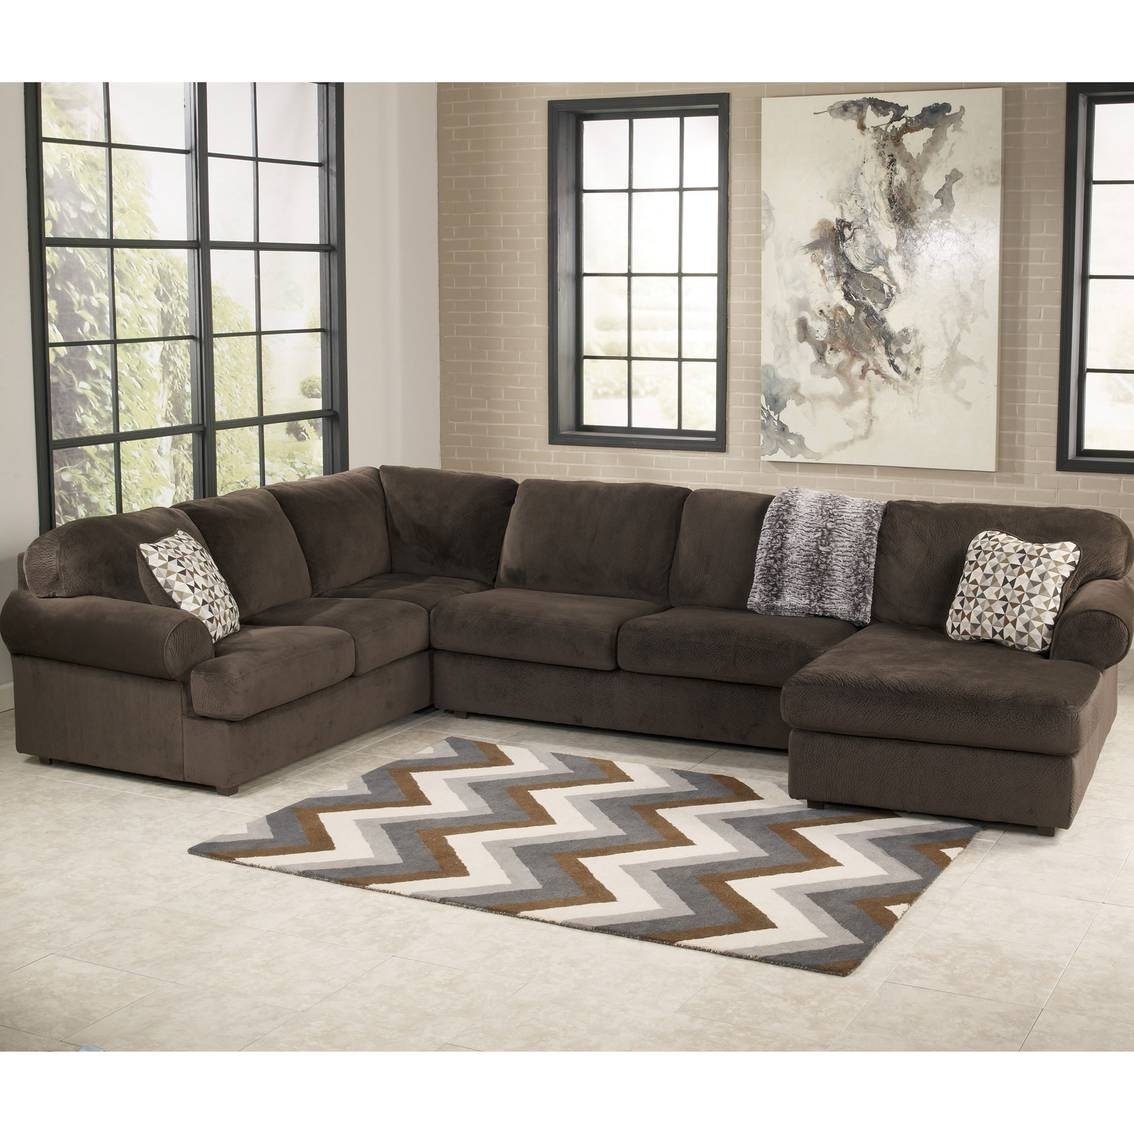 Signature Designashley Jessa Place 3 Pc (View 11 of 15)